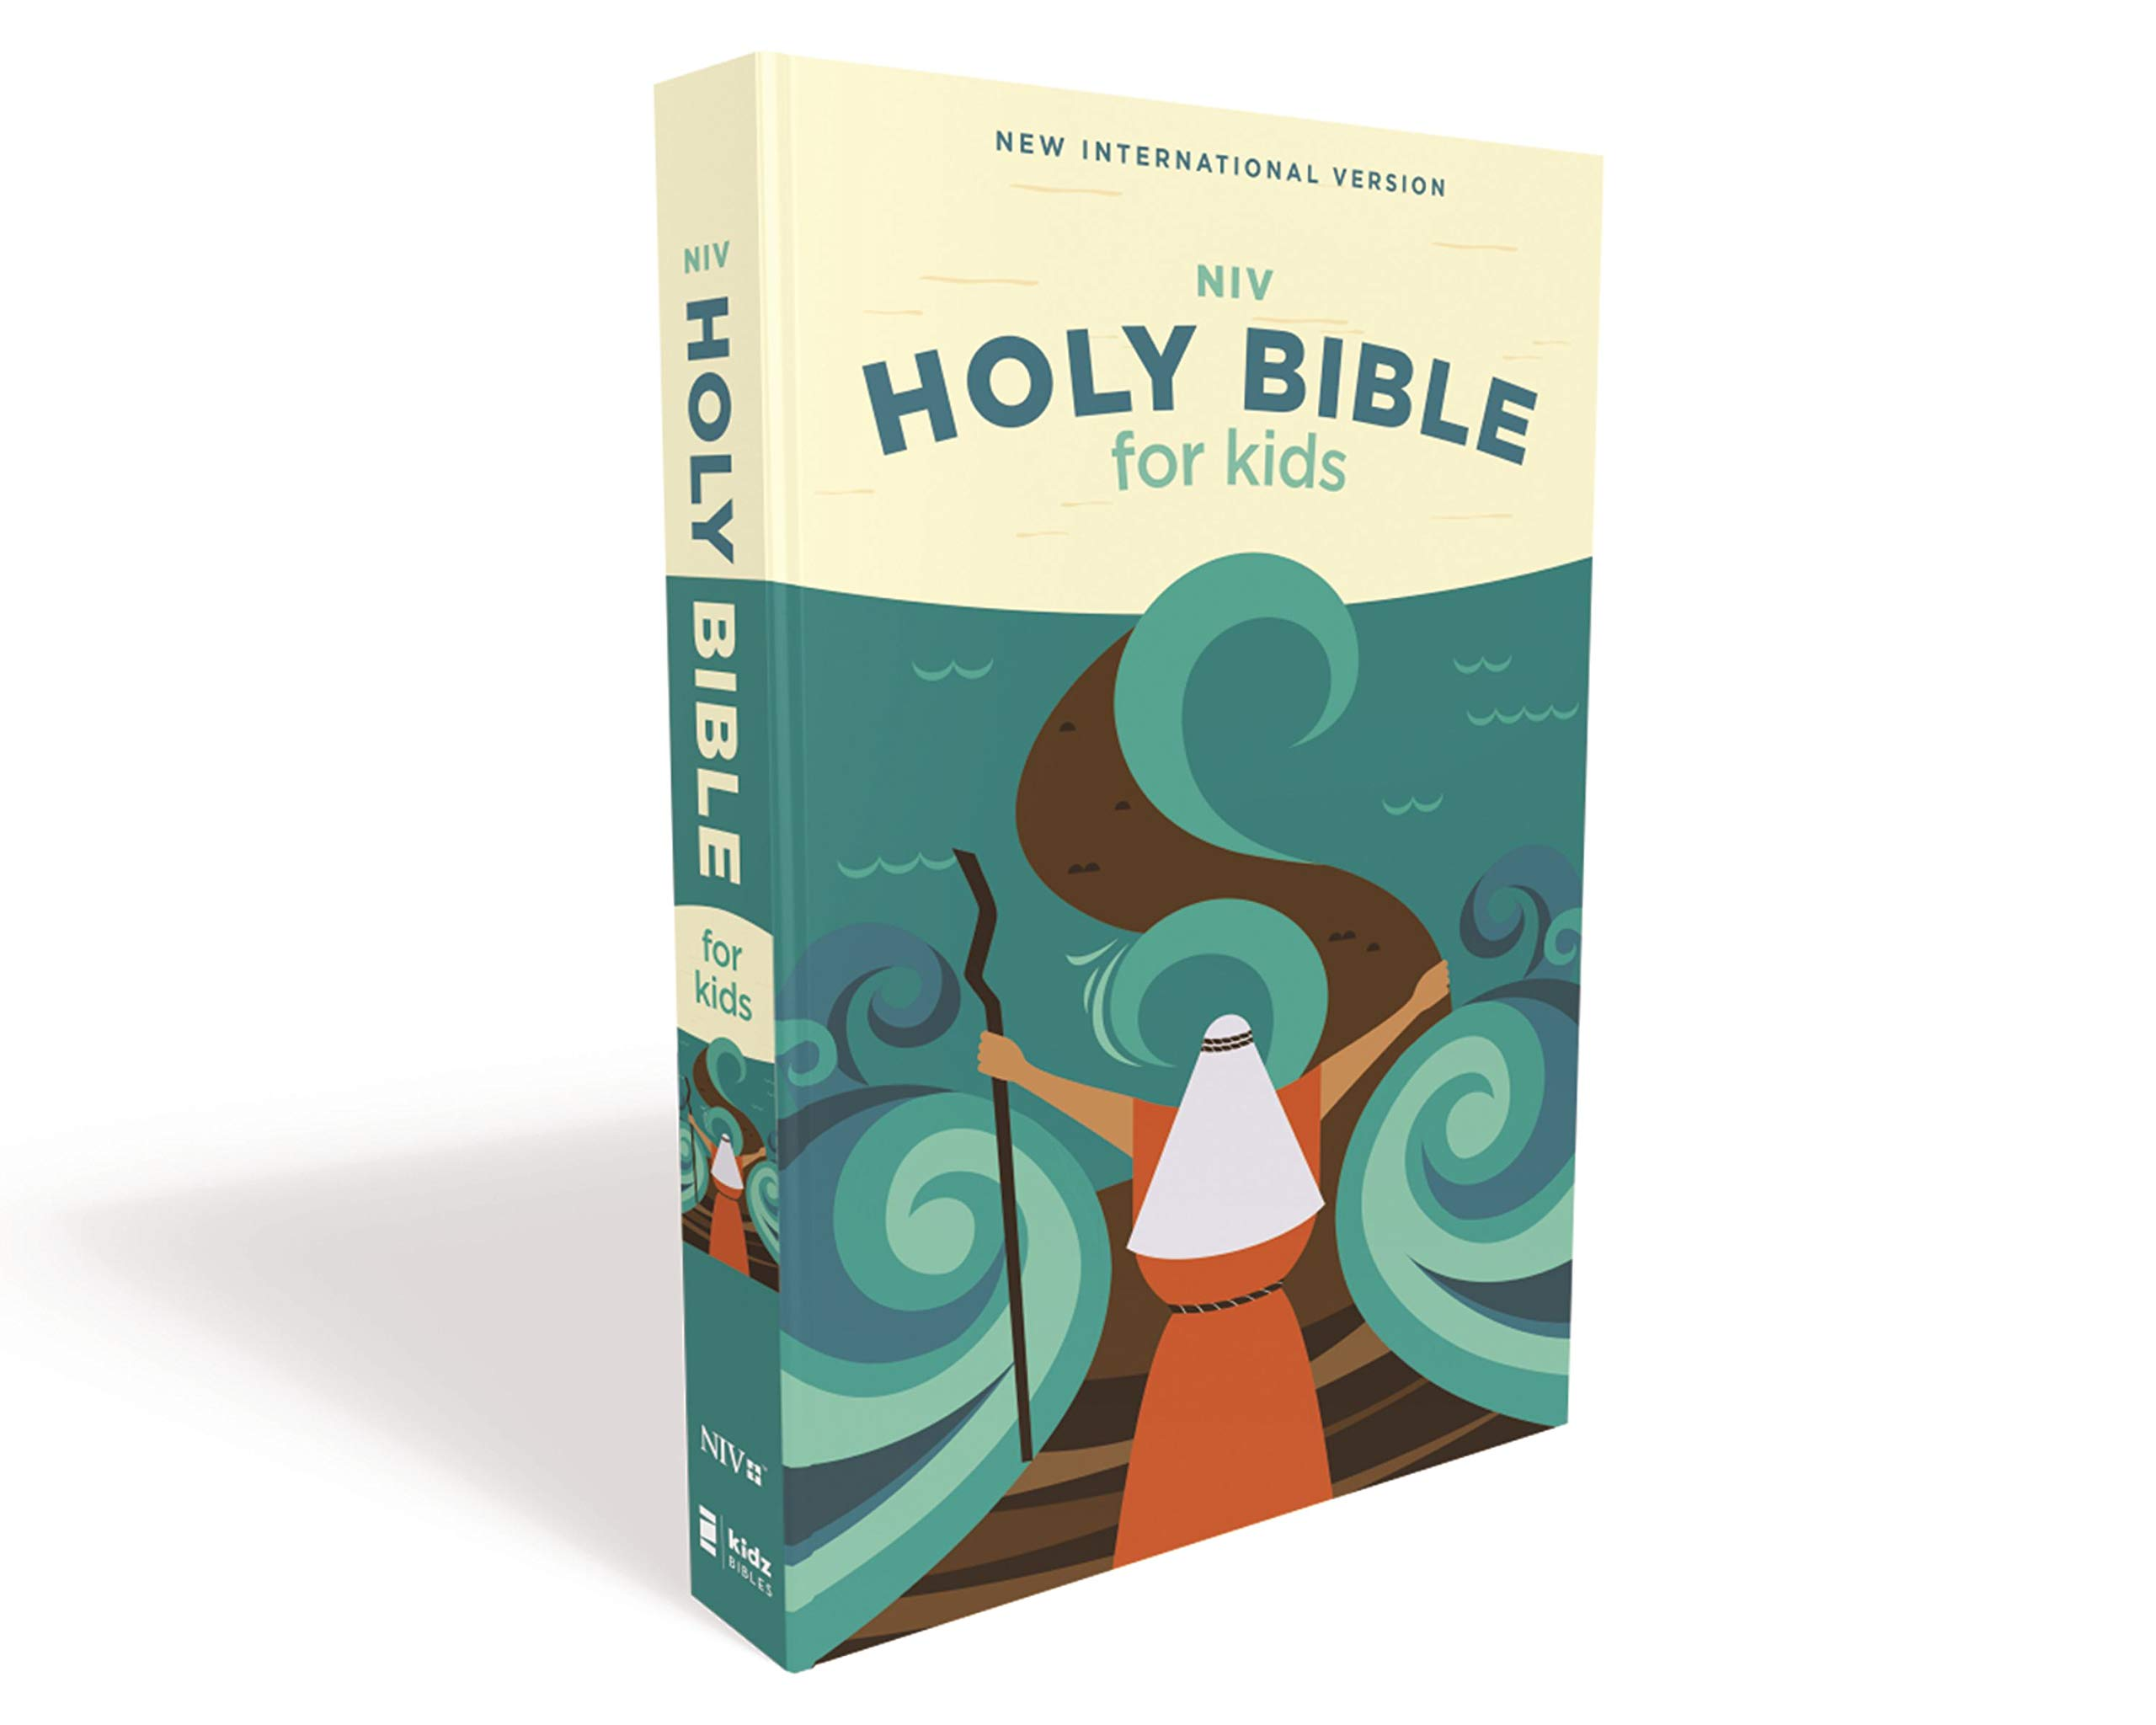 Niv Holy Bible For Kids Economy Edition Paperback Comfort Print Zondervan 9780310455059 Amazon Com Books